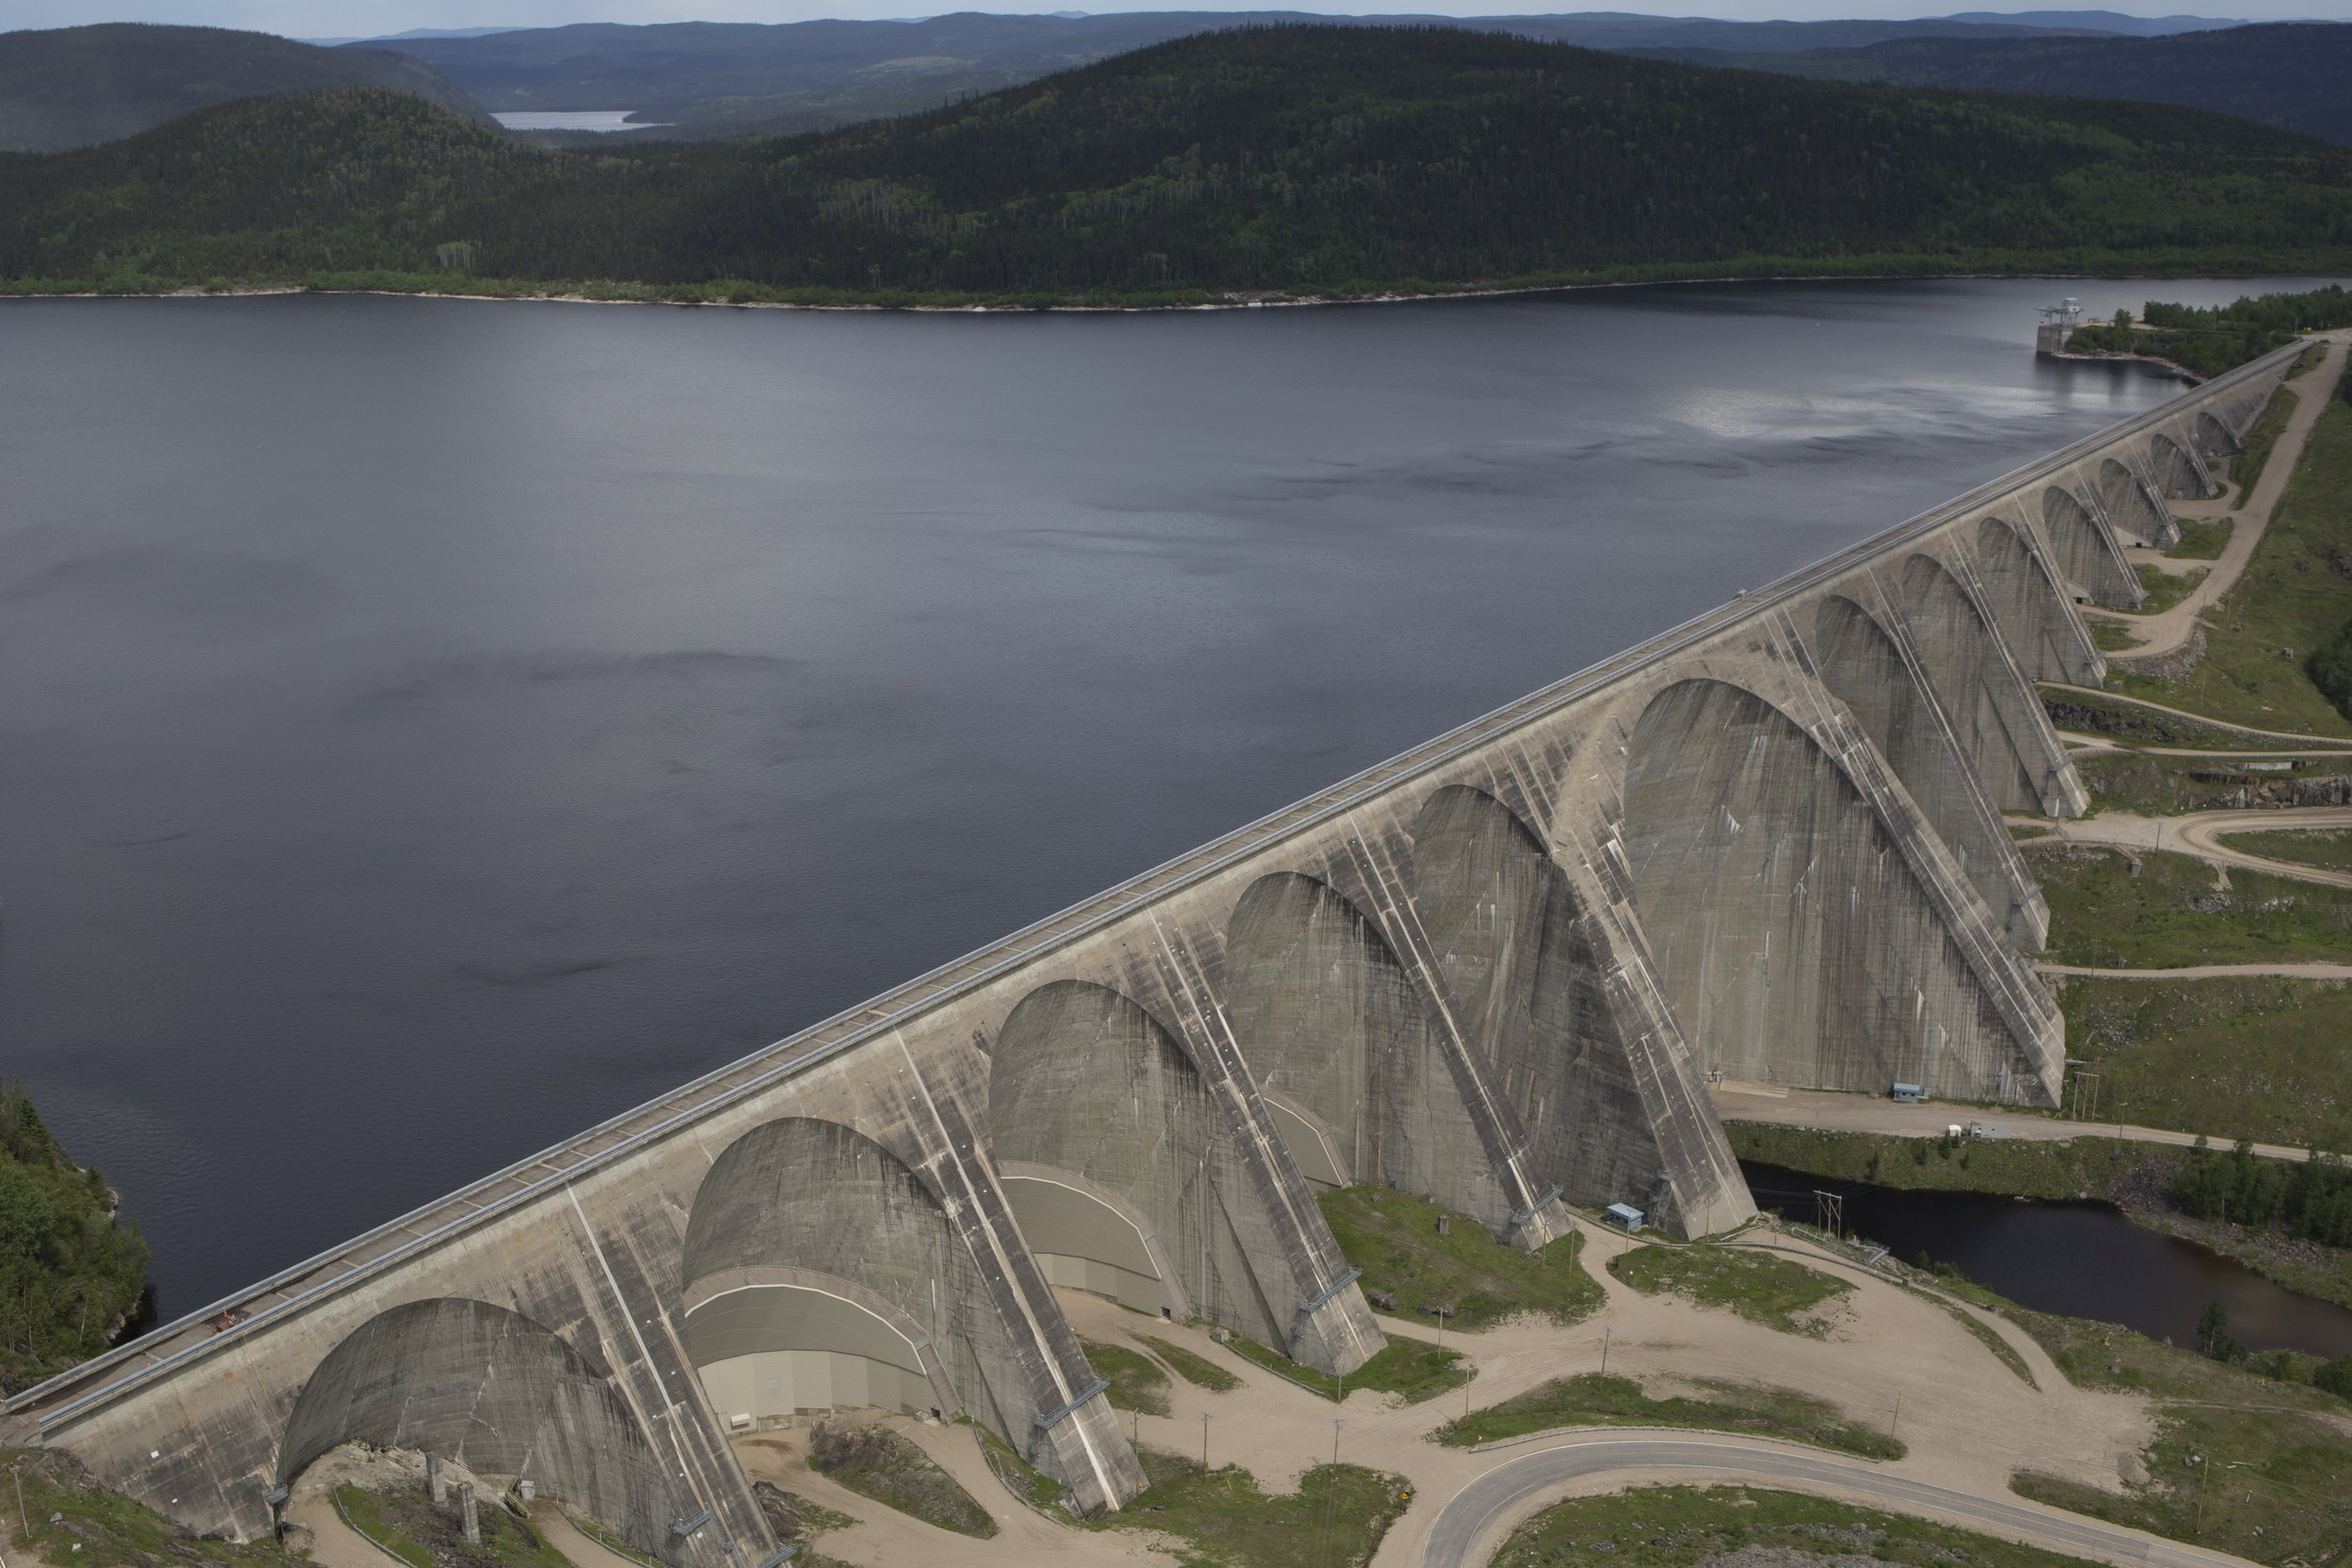 The Daniel-Johnson Dam, otherwise known as the Manic-5, on the Manicouagan River